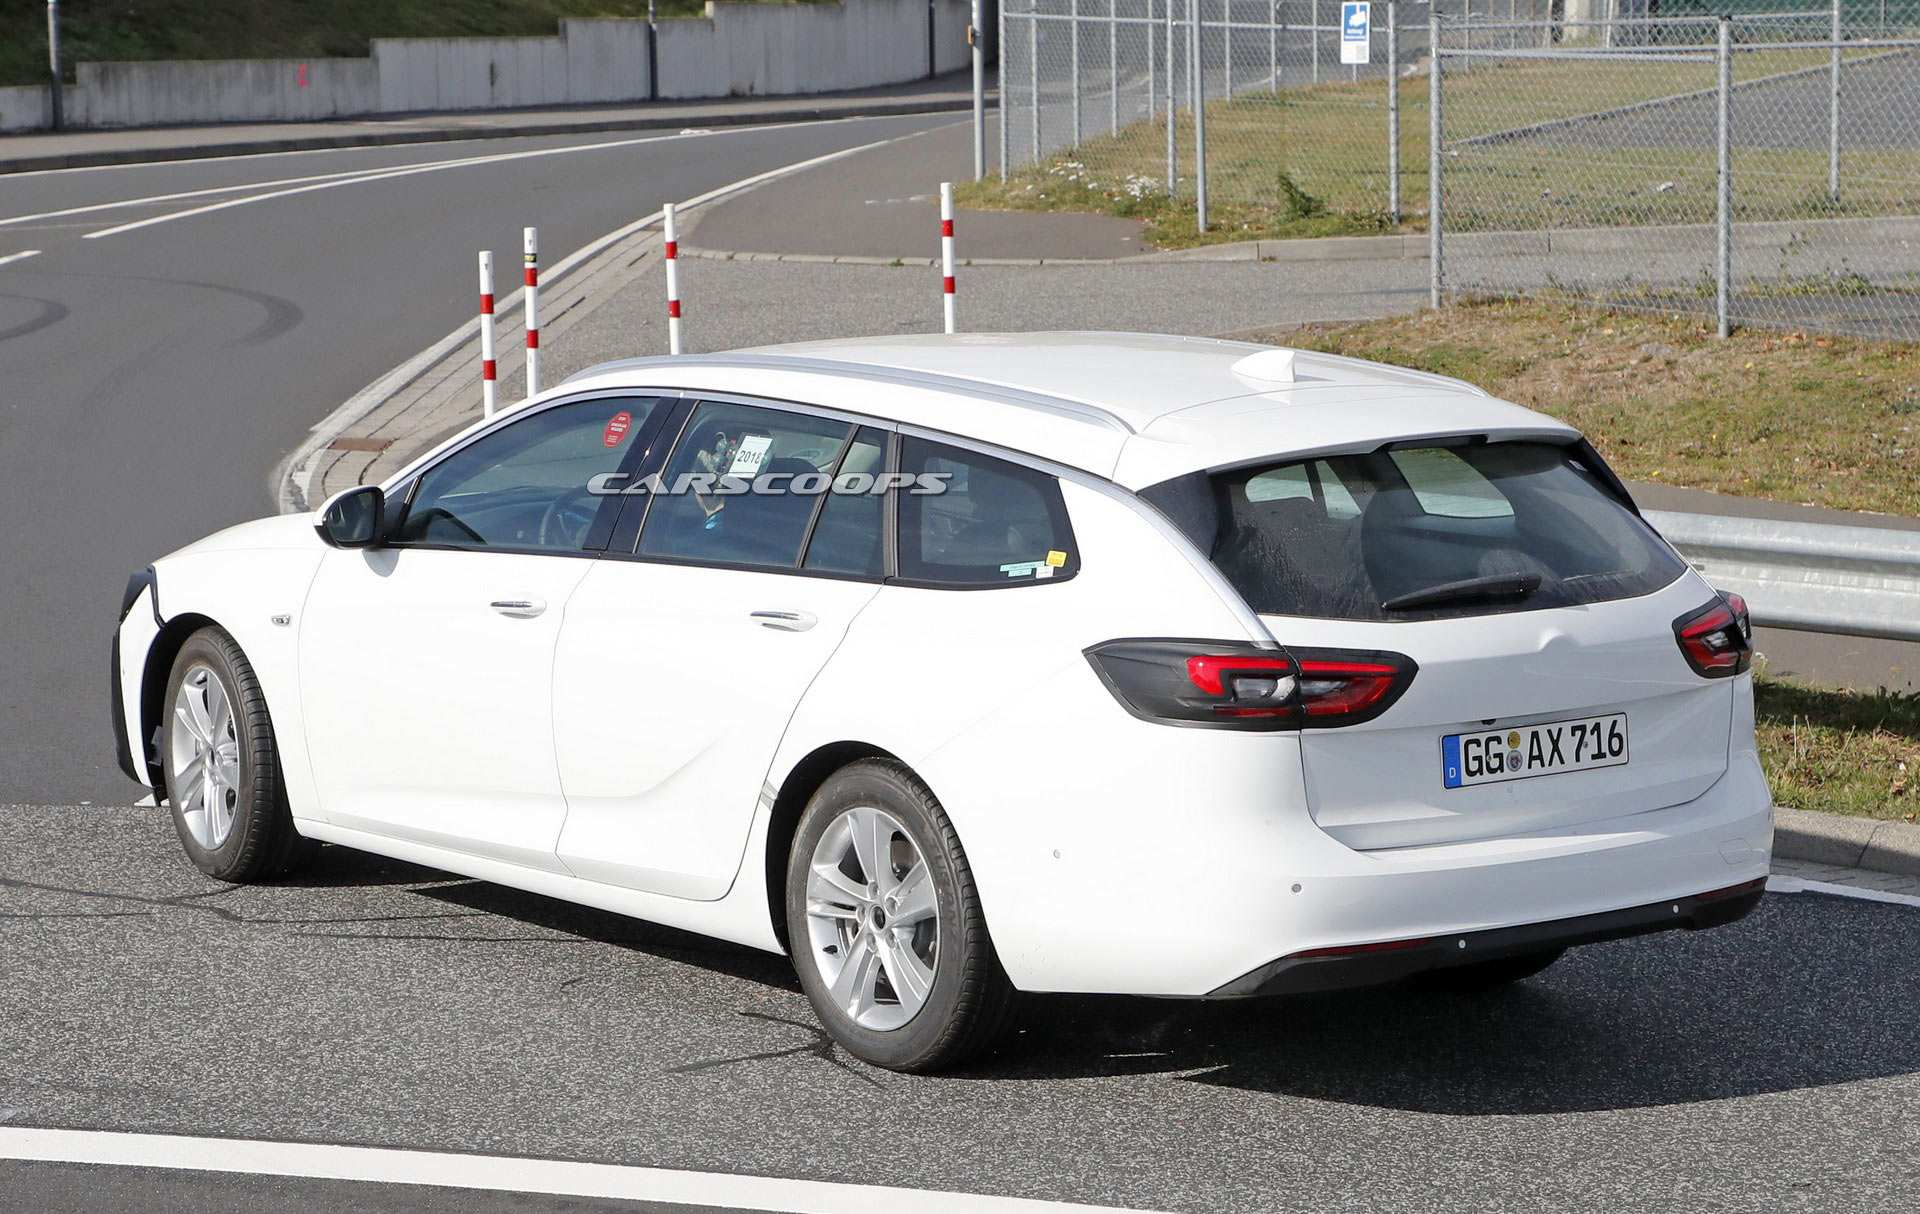 64 Concept of Opel Insignia Sports Tourer 2020 History with Opel Insignia Sports Tourer 2020